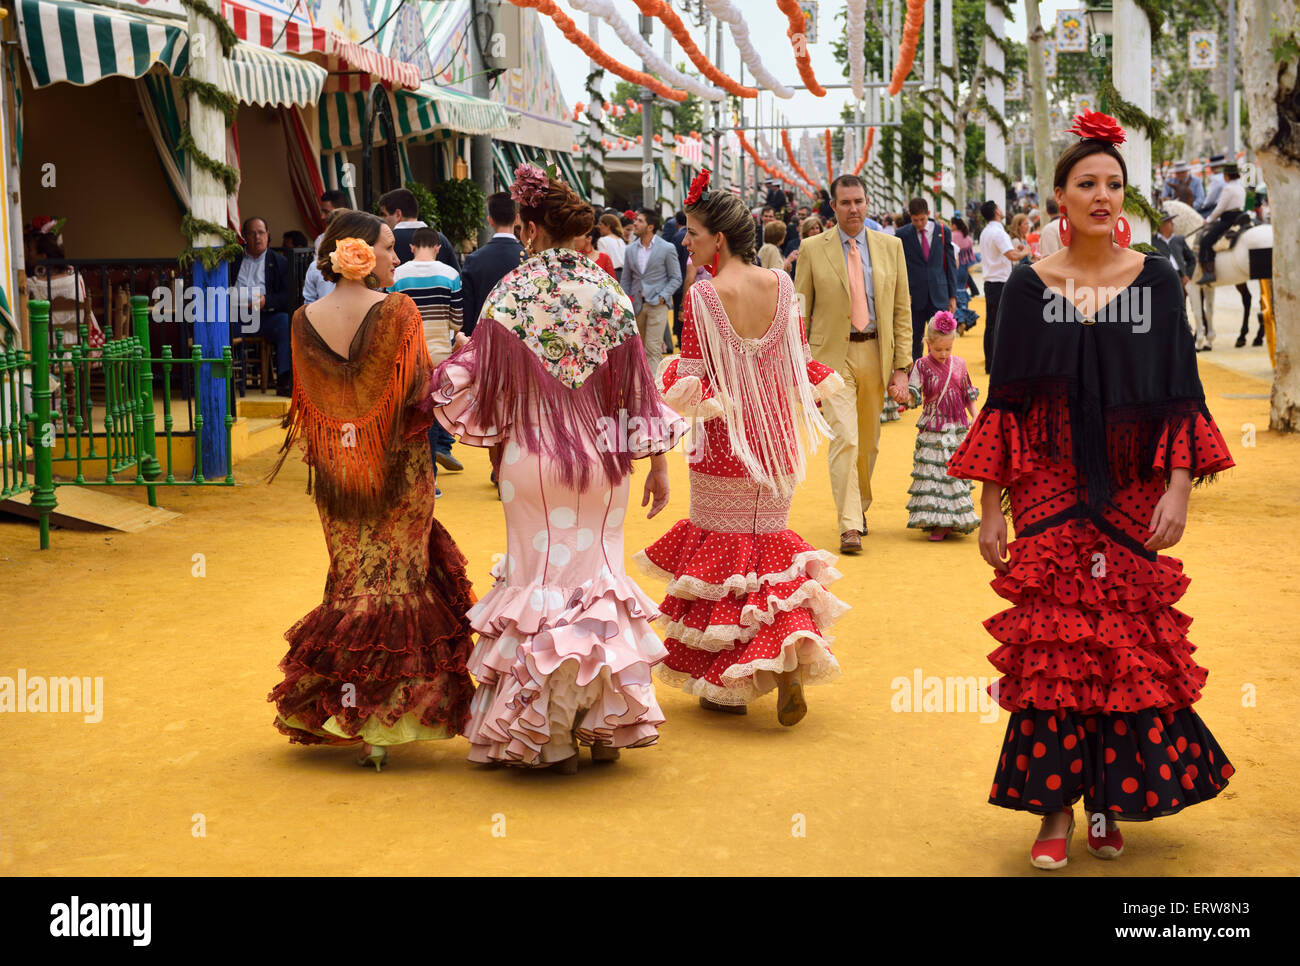 Women in flamenco dresses walking on ochre earth at the April Fair in Seville Spain - Stock Image